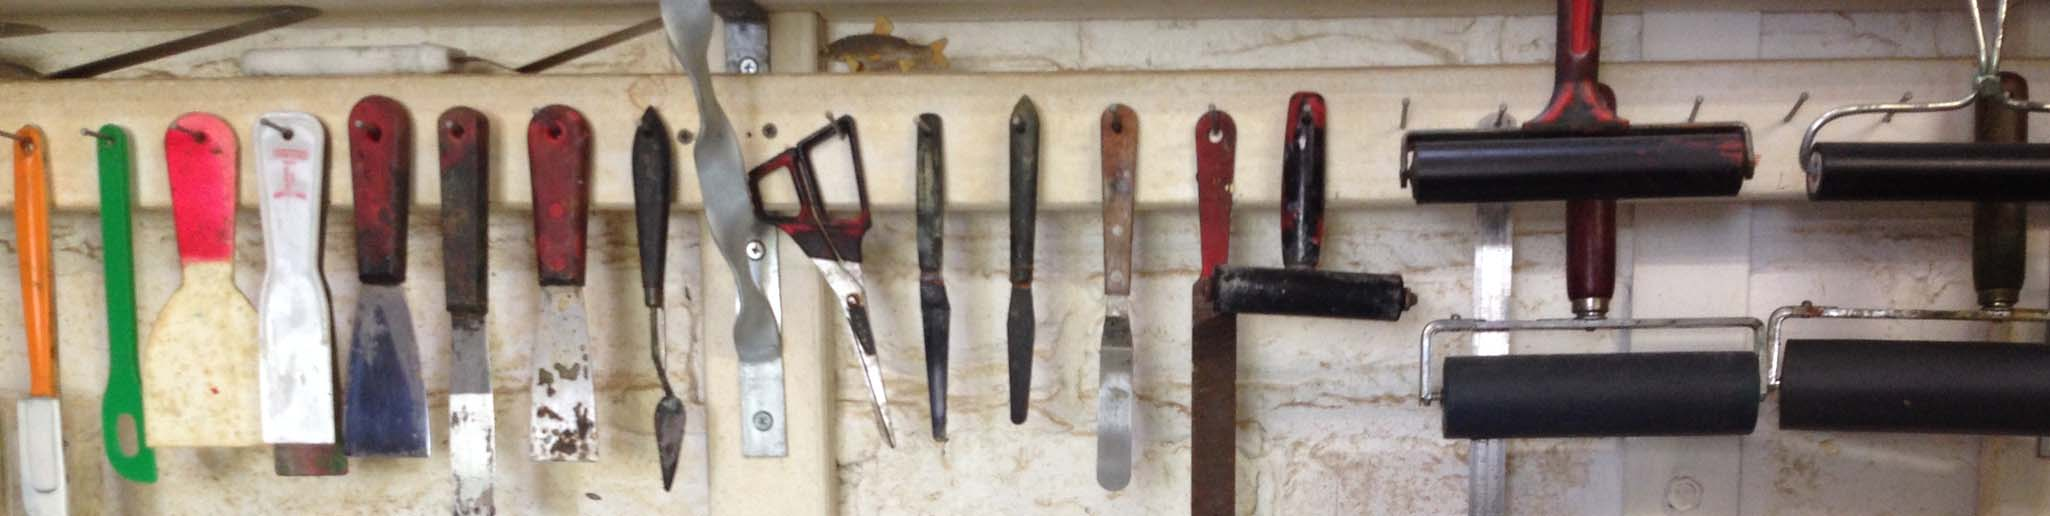 Printmaking Tools in Jacky's studio.